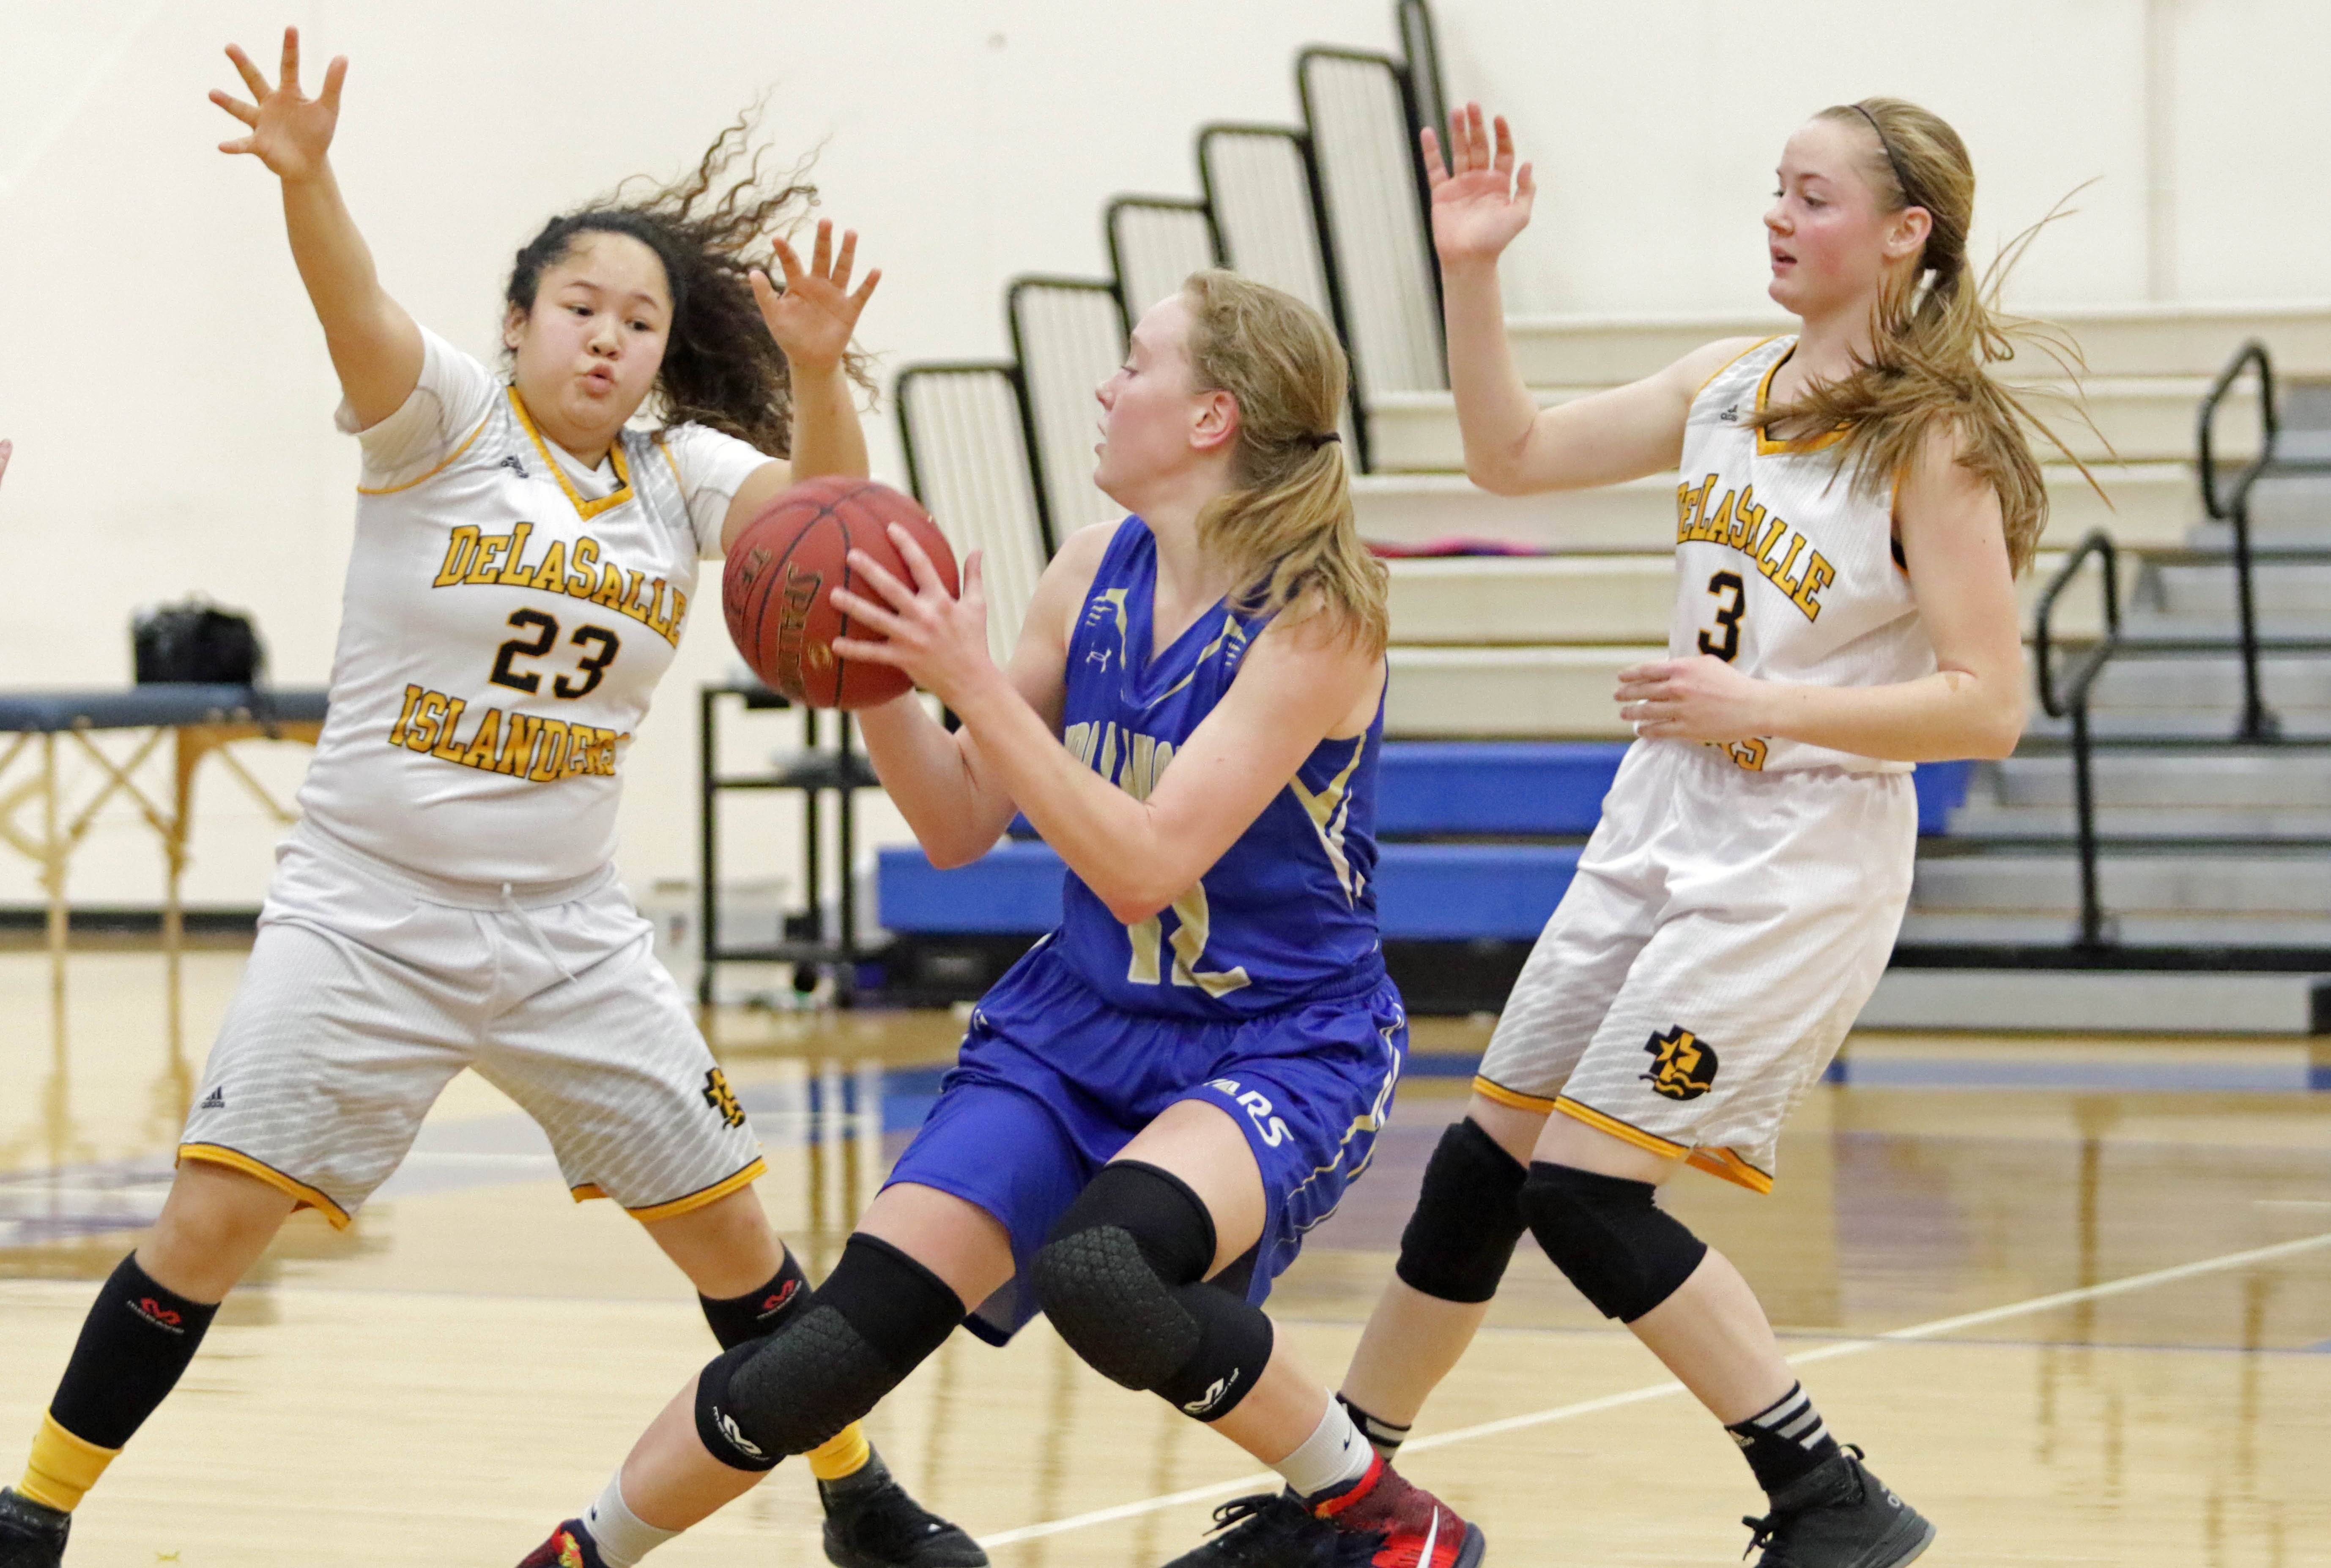 Bagwell-Katalinich scores 43 as Holy Angels downs DeLaSalle